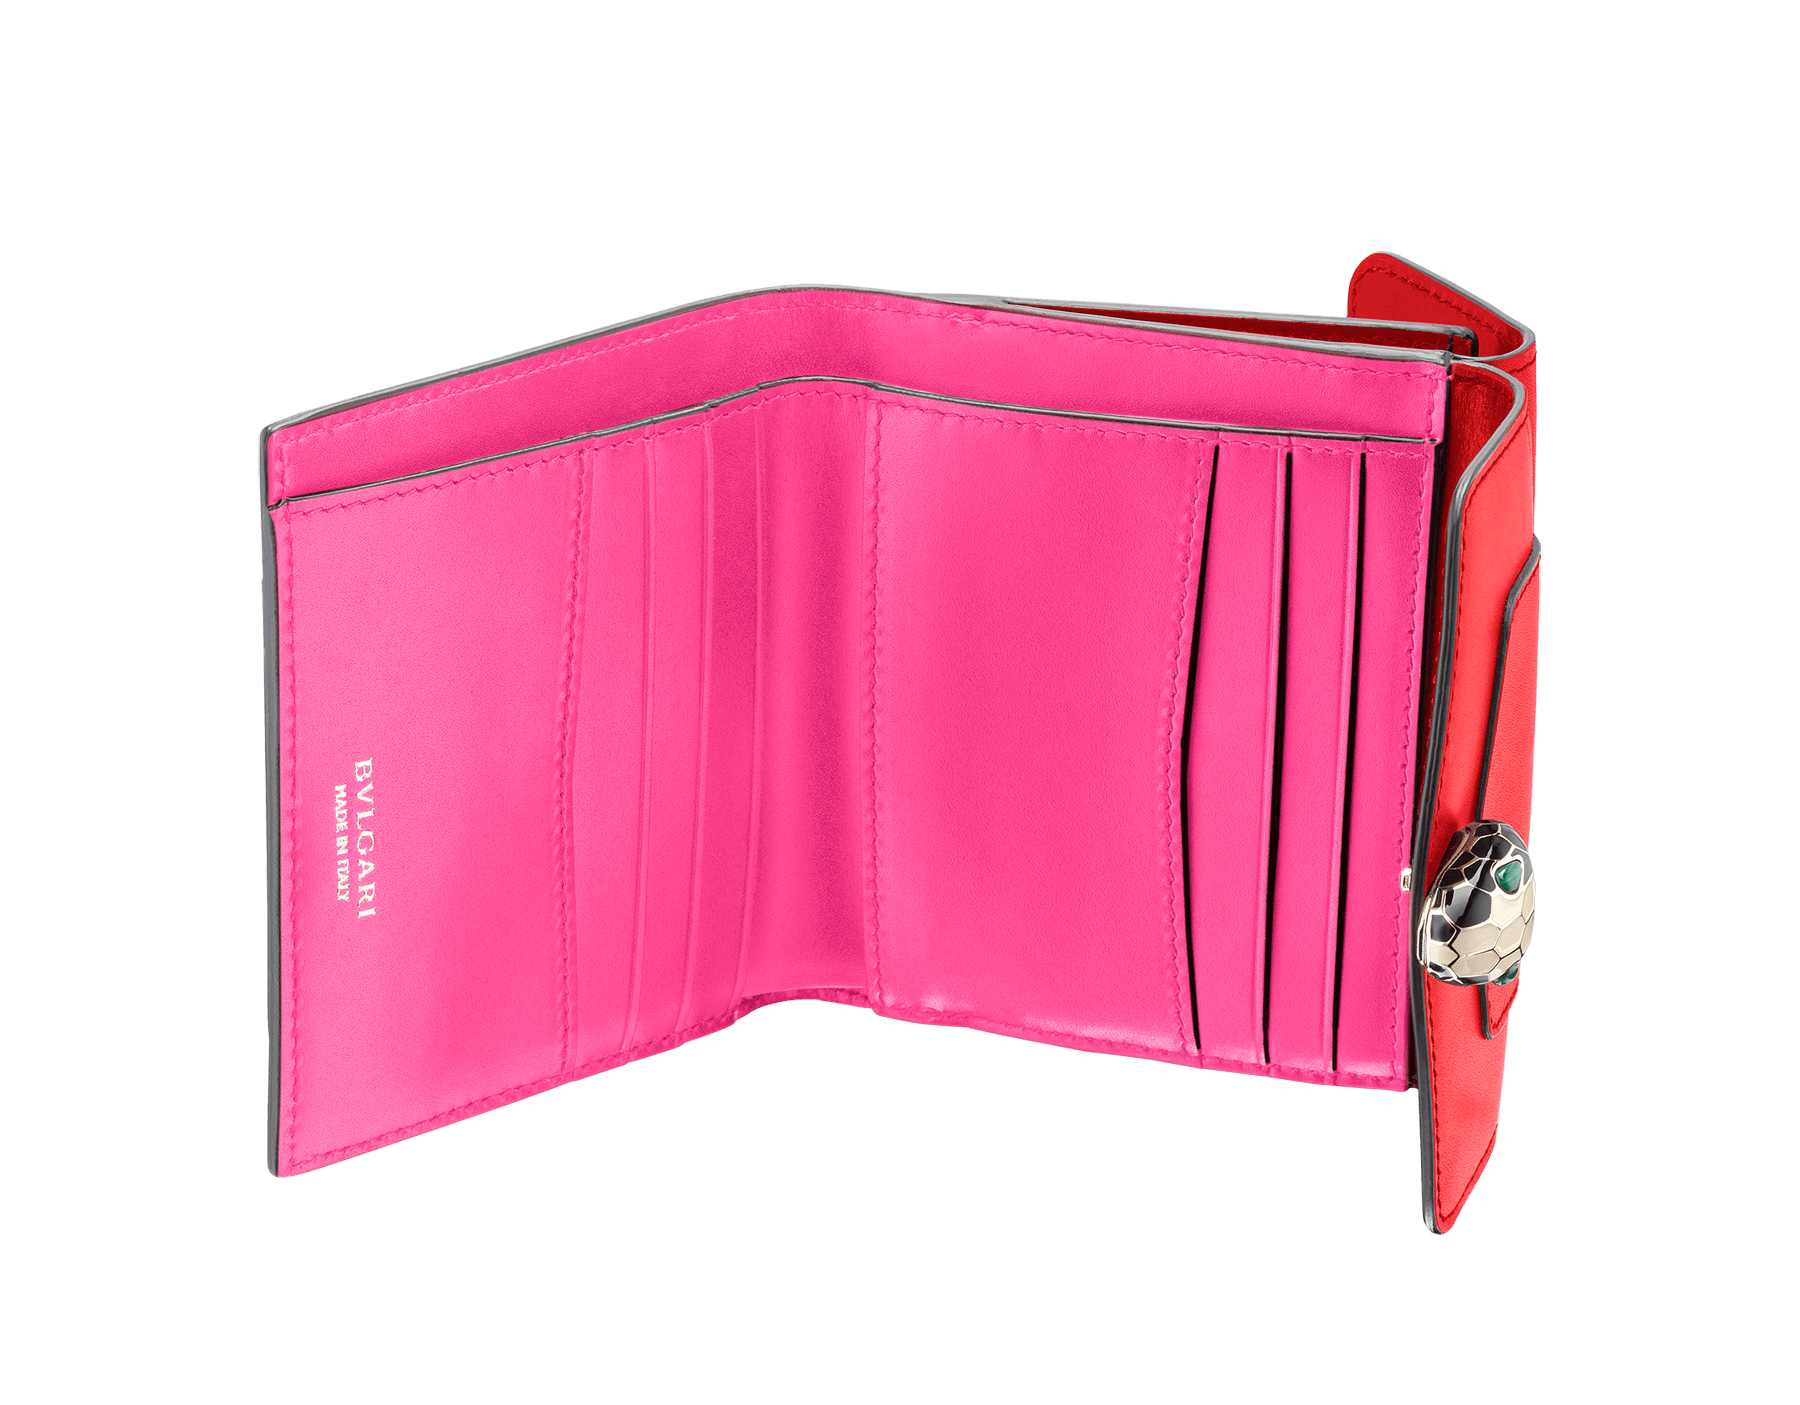 Serpenti Forever square compact wallet in sea star coral and pink spinel calf leather. Iconic snakehead charm in black and white enamel with green malachite eyes. 288006 image 2